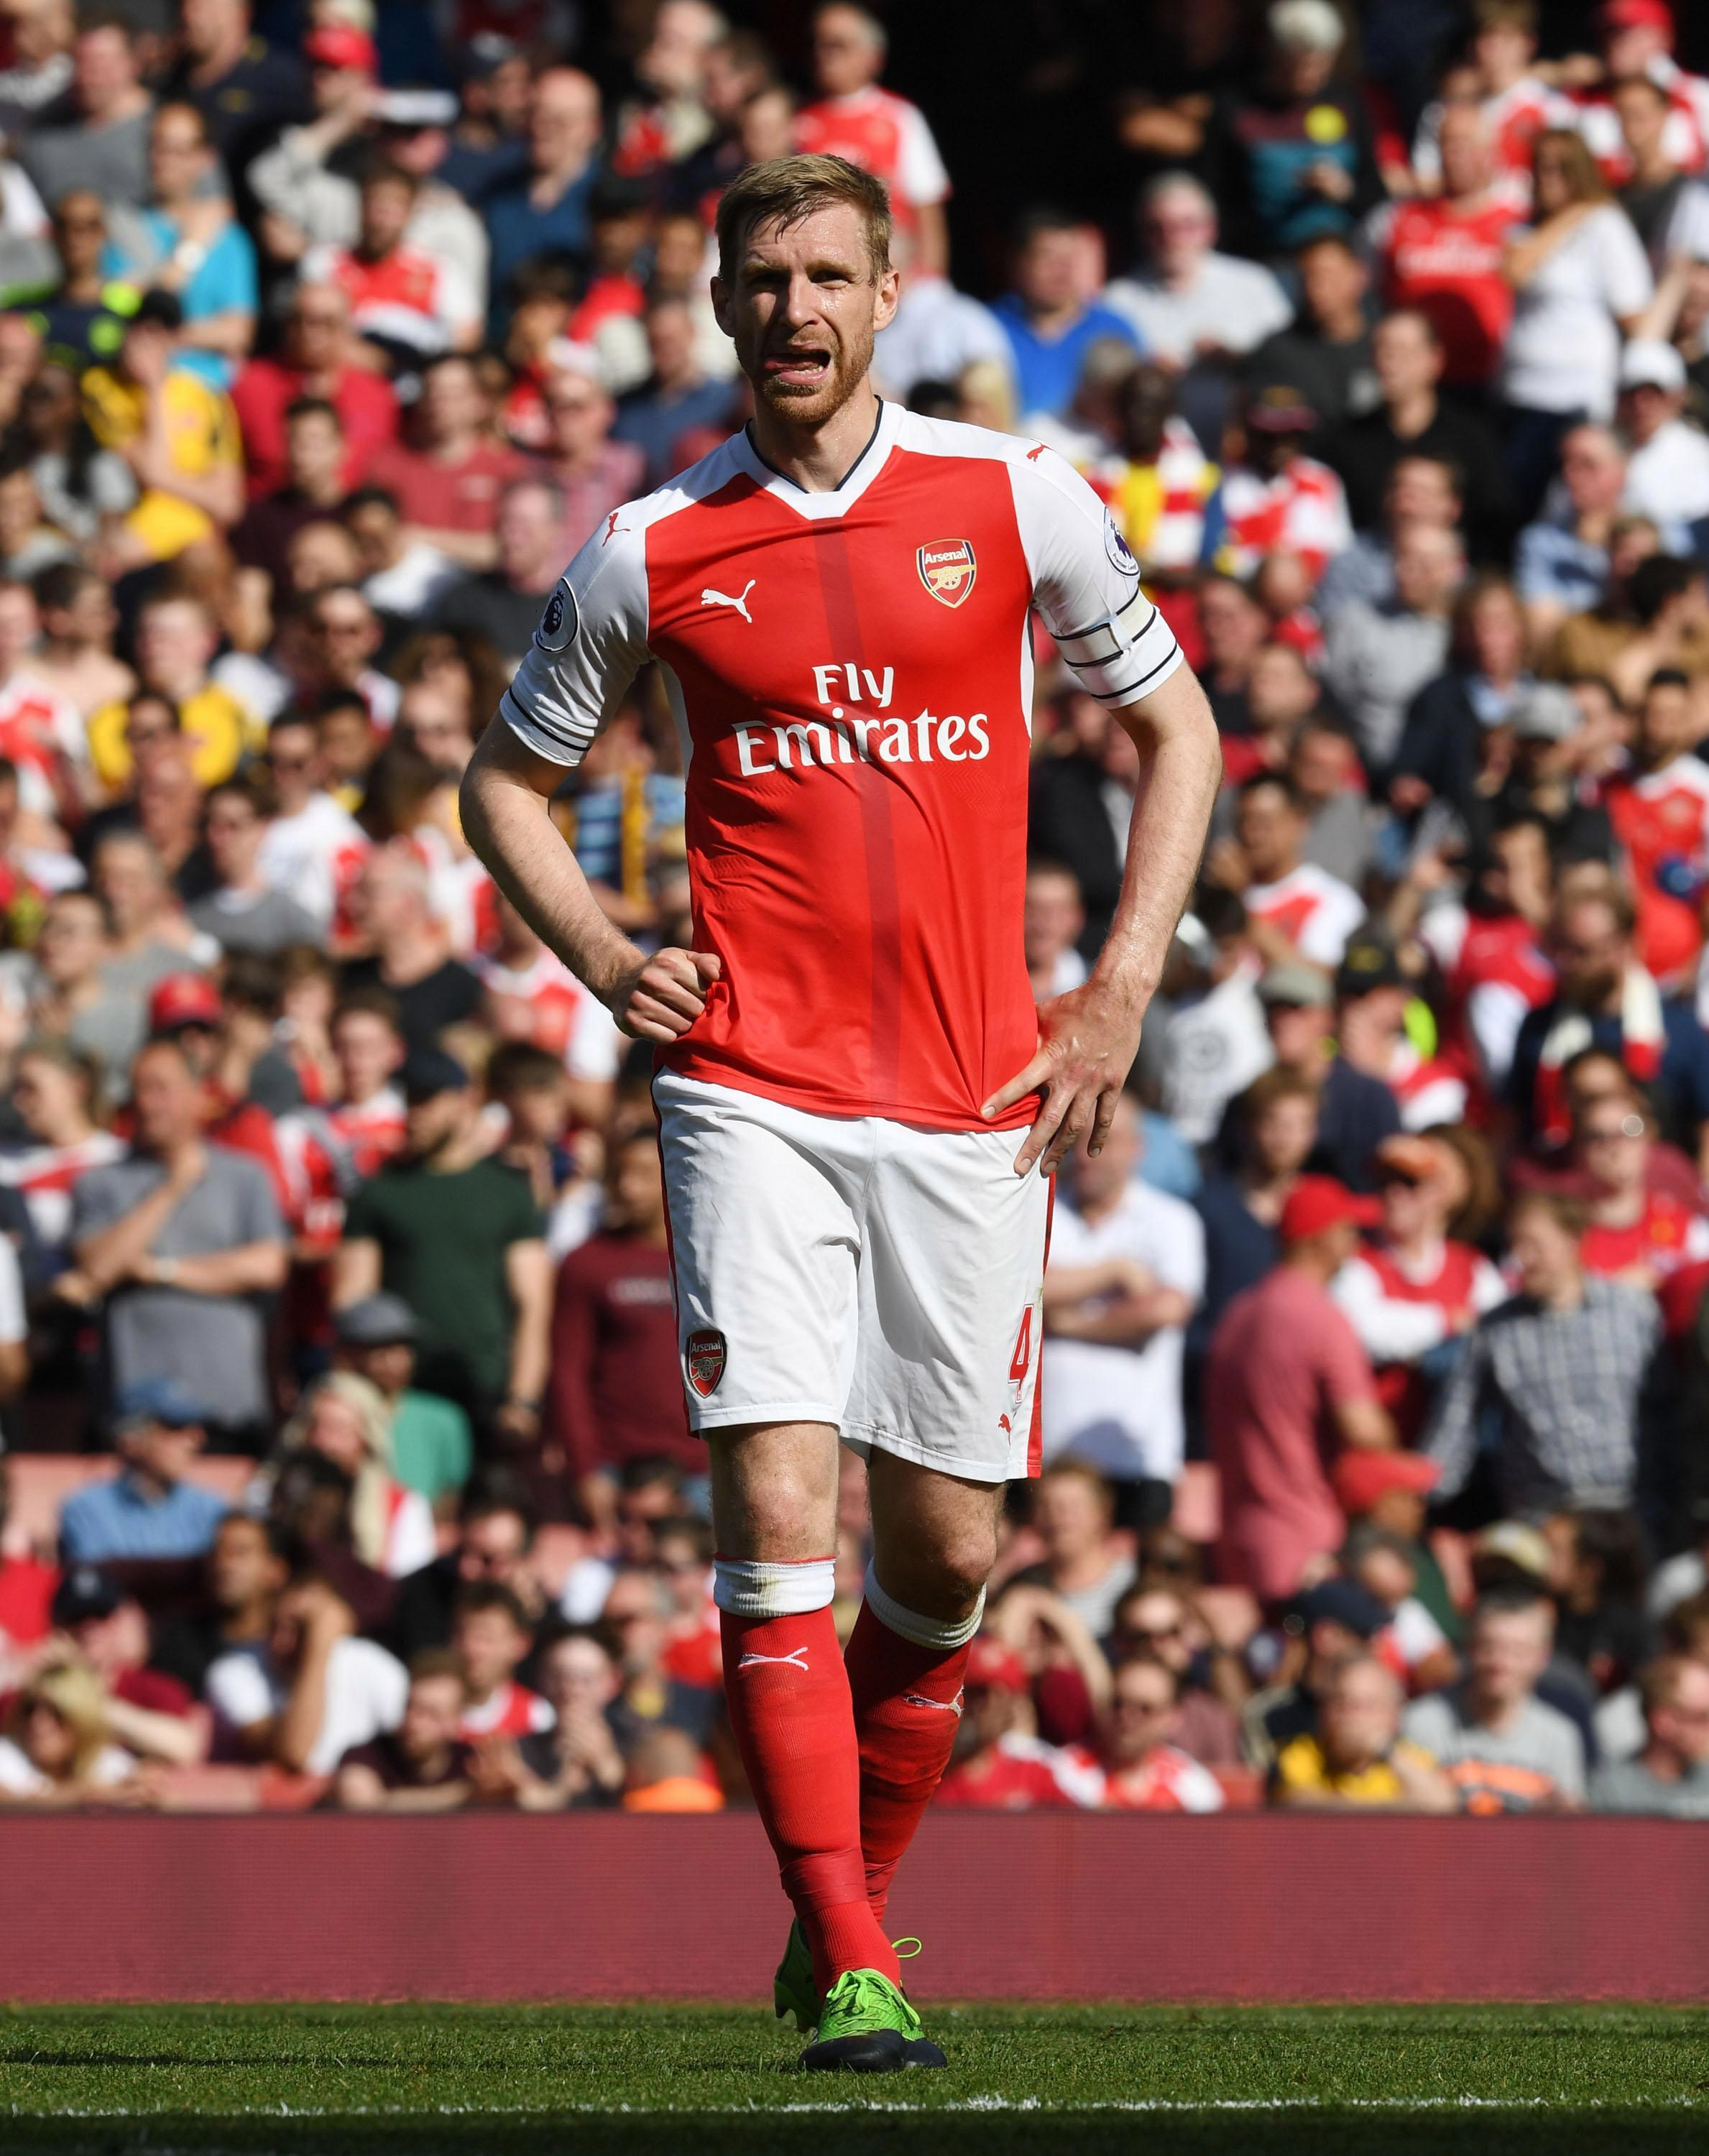 Per Mertesacker looks like he will be lacing up his boots for his first start of the season